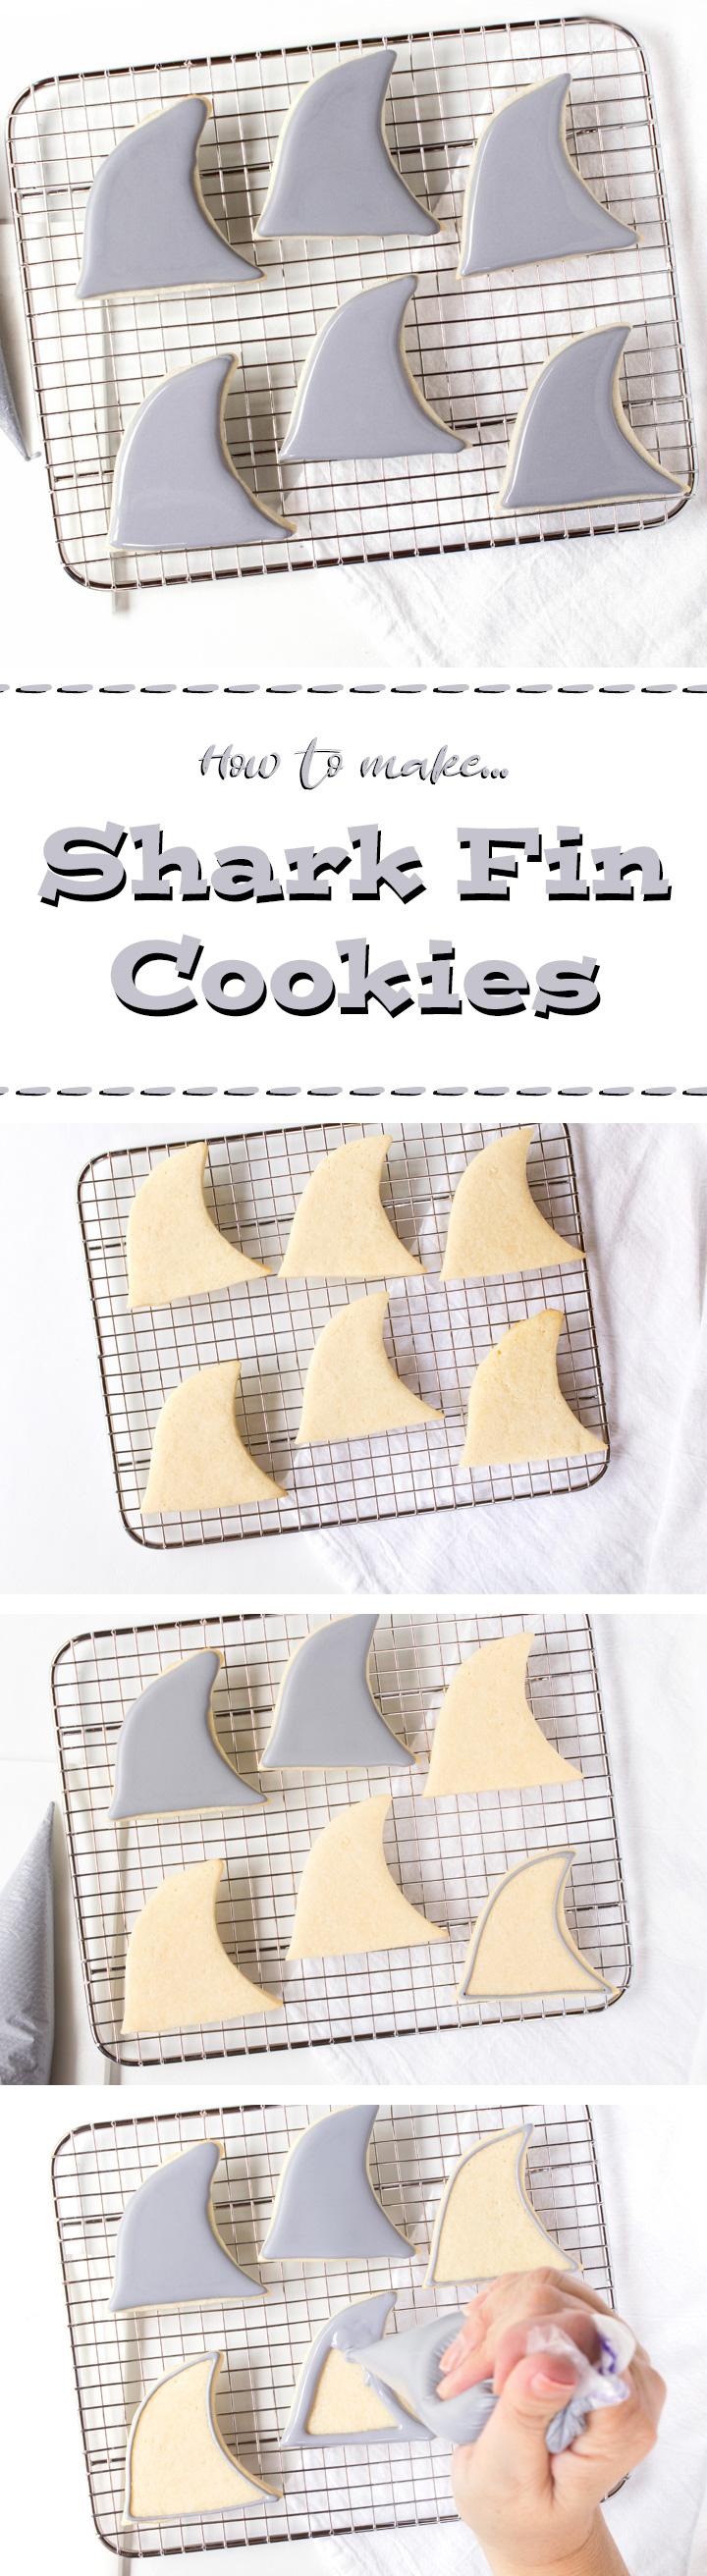 How to Make Fun Simple Shark Fin Cookies with a How to Video   The Bearfoot Baker